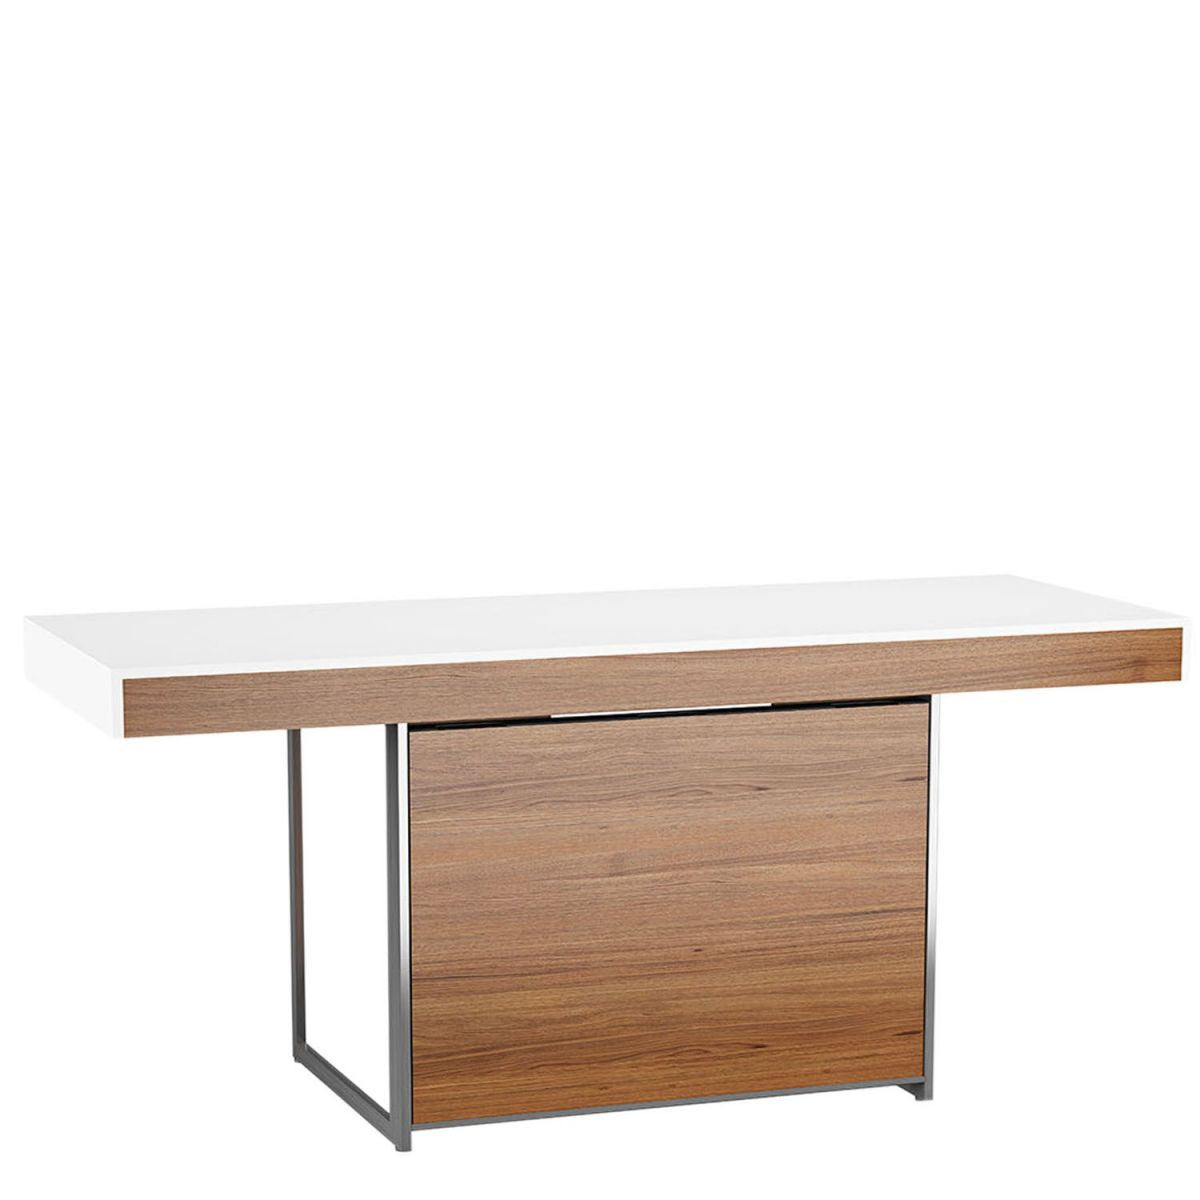 Format 6301 Desk - Natural Walnut